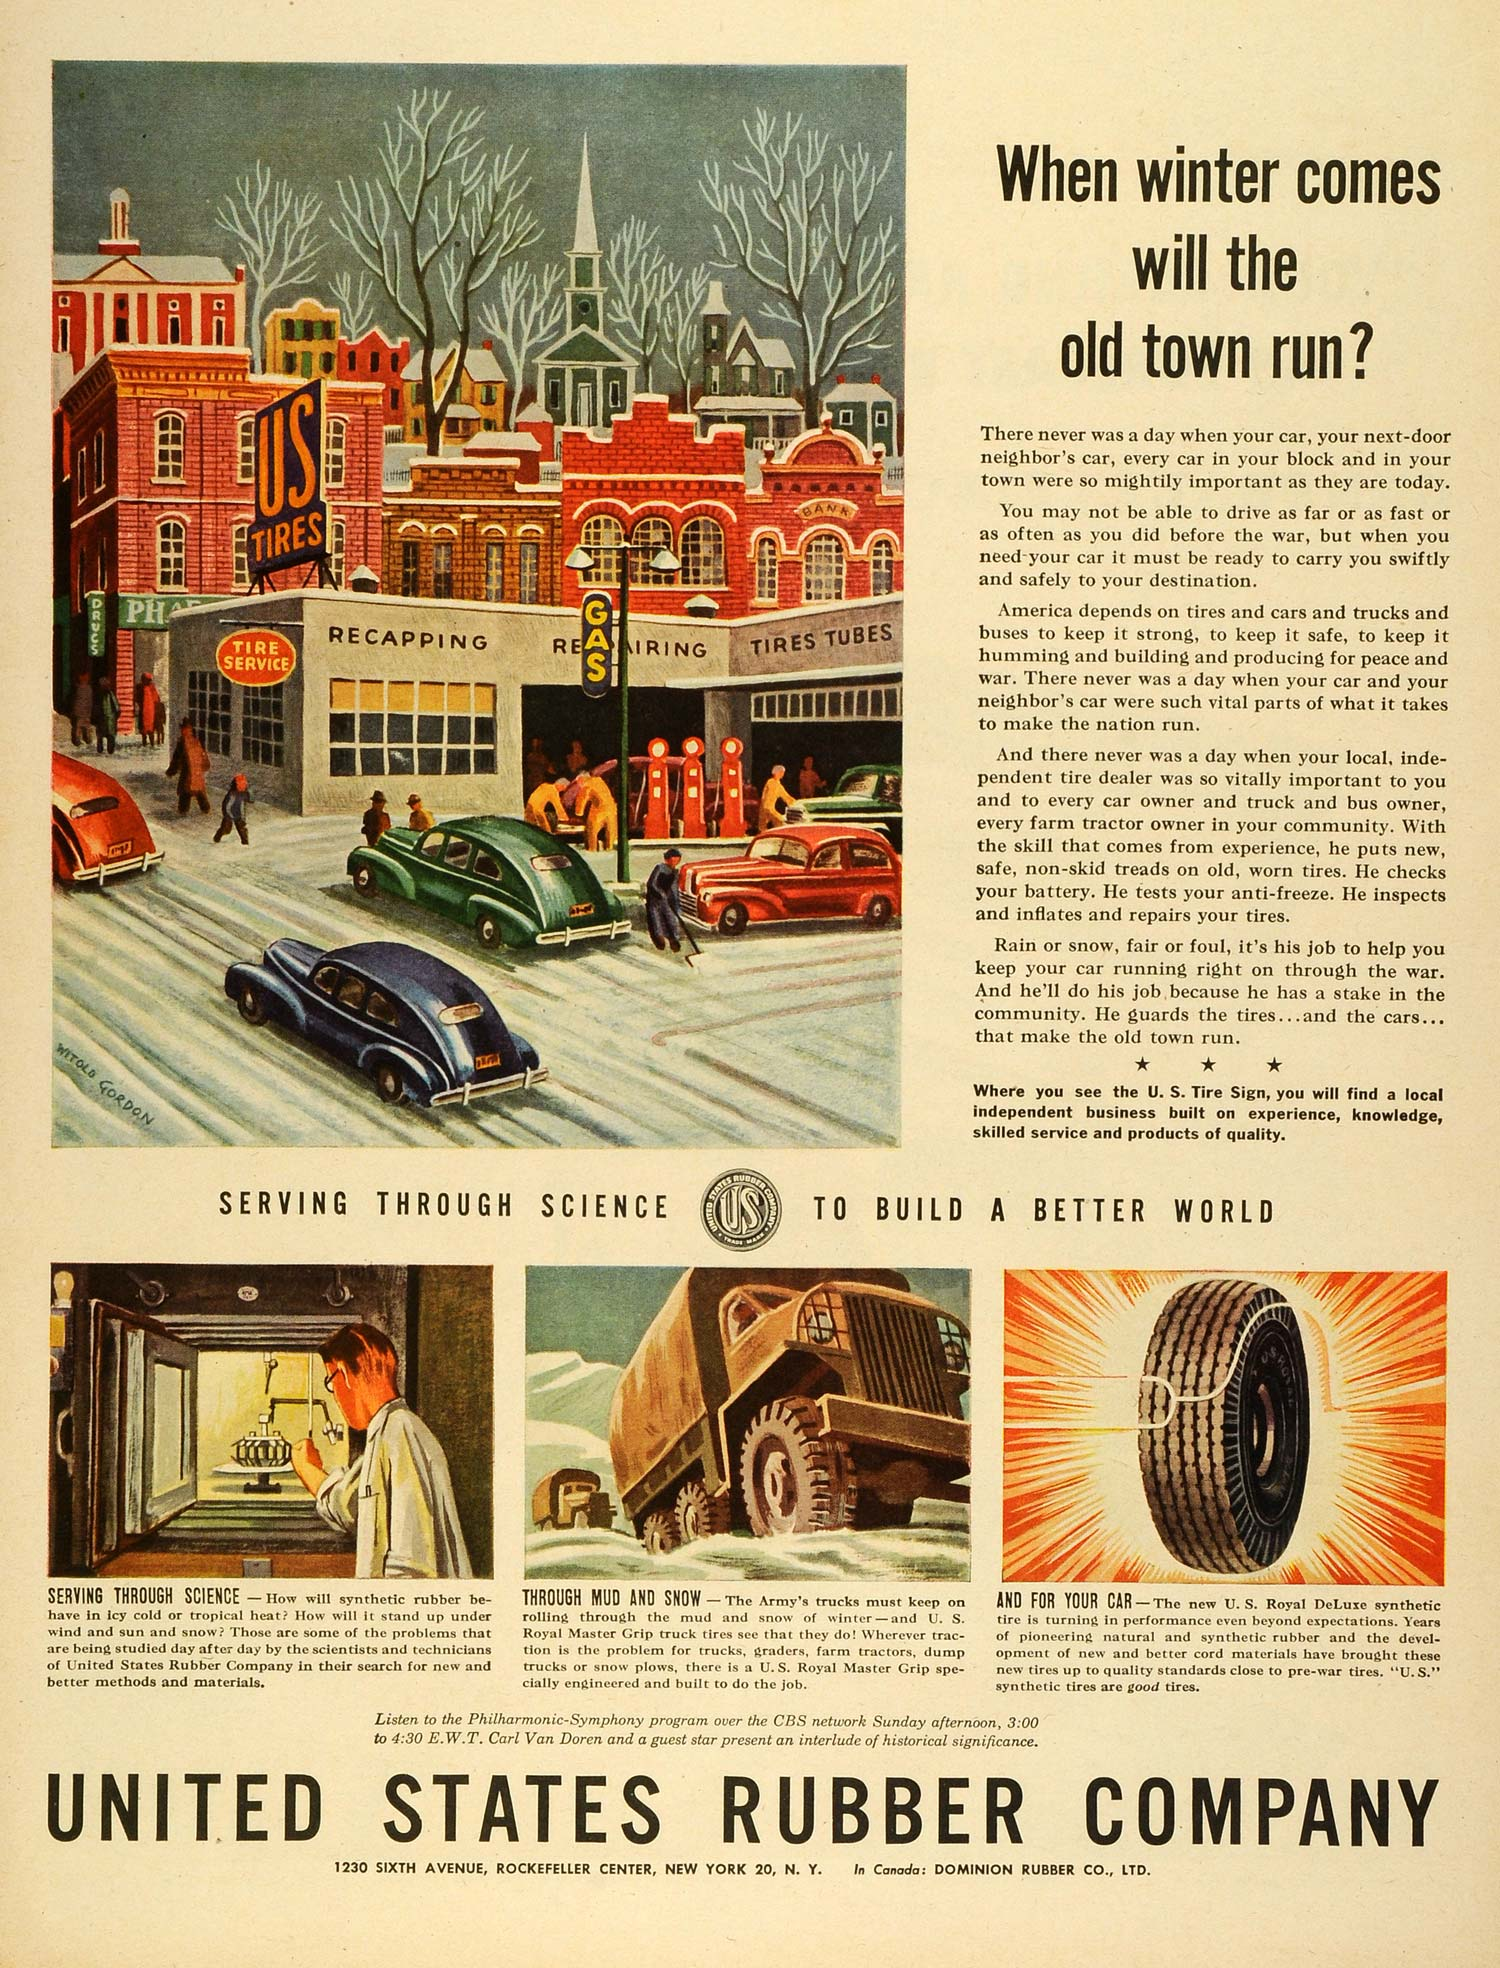 Vintage Advertising Art Tagged Tires Period Paper Ignition Circuit Diagram For The 1935 Chevrolet Master De Luxe Standard And Truck Models 1944 Ad United States Rubber Co Logo Automobile Parts Winter Town Lf4